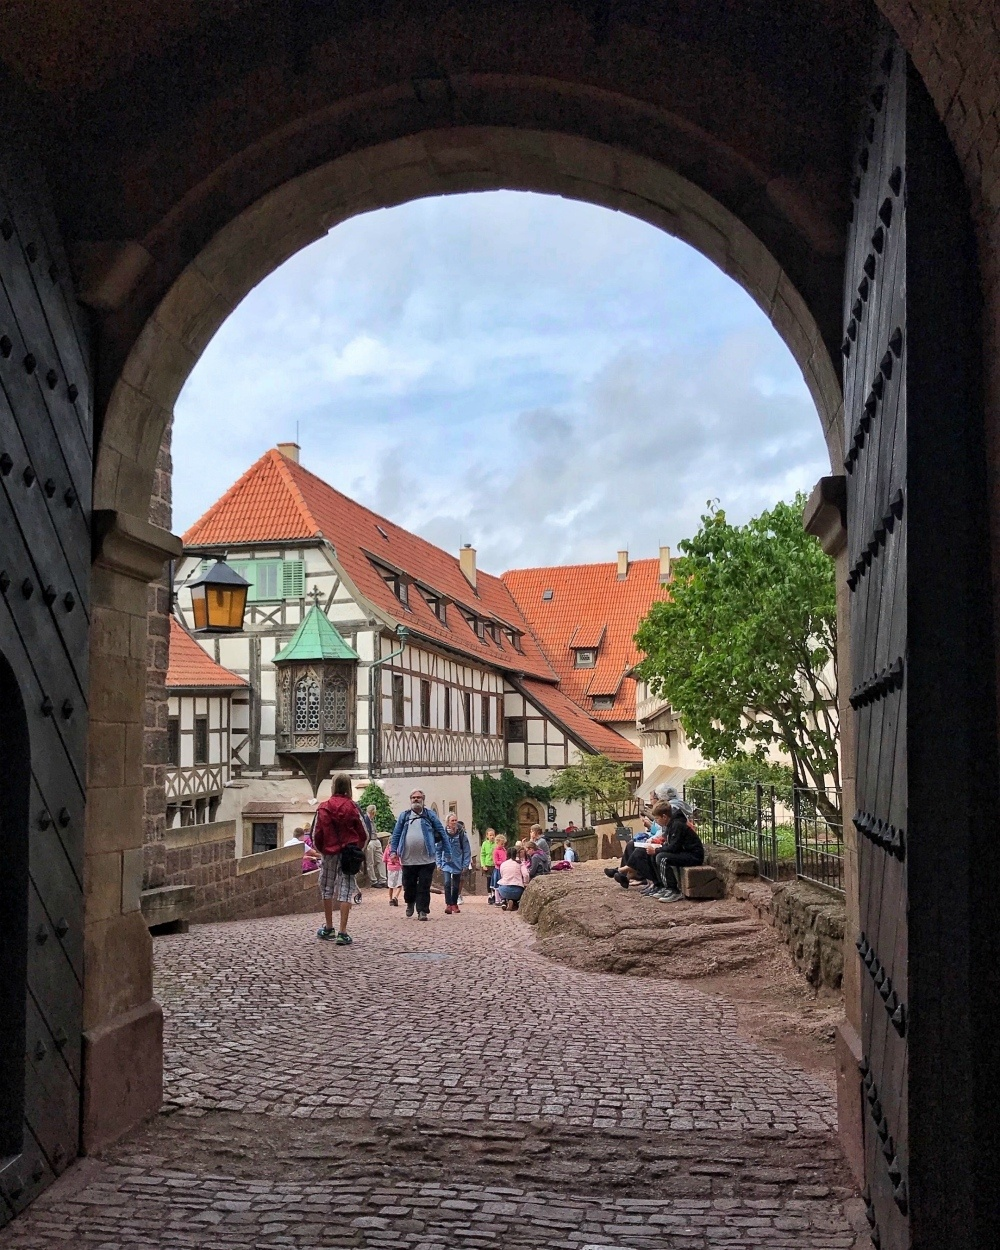 Arch of Wartburg Castle in Eisenach Thuringia Germany Photo Heatheronhertravels.com